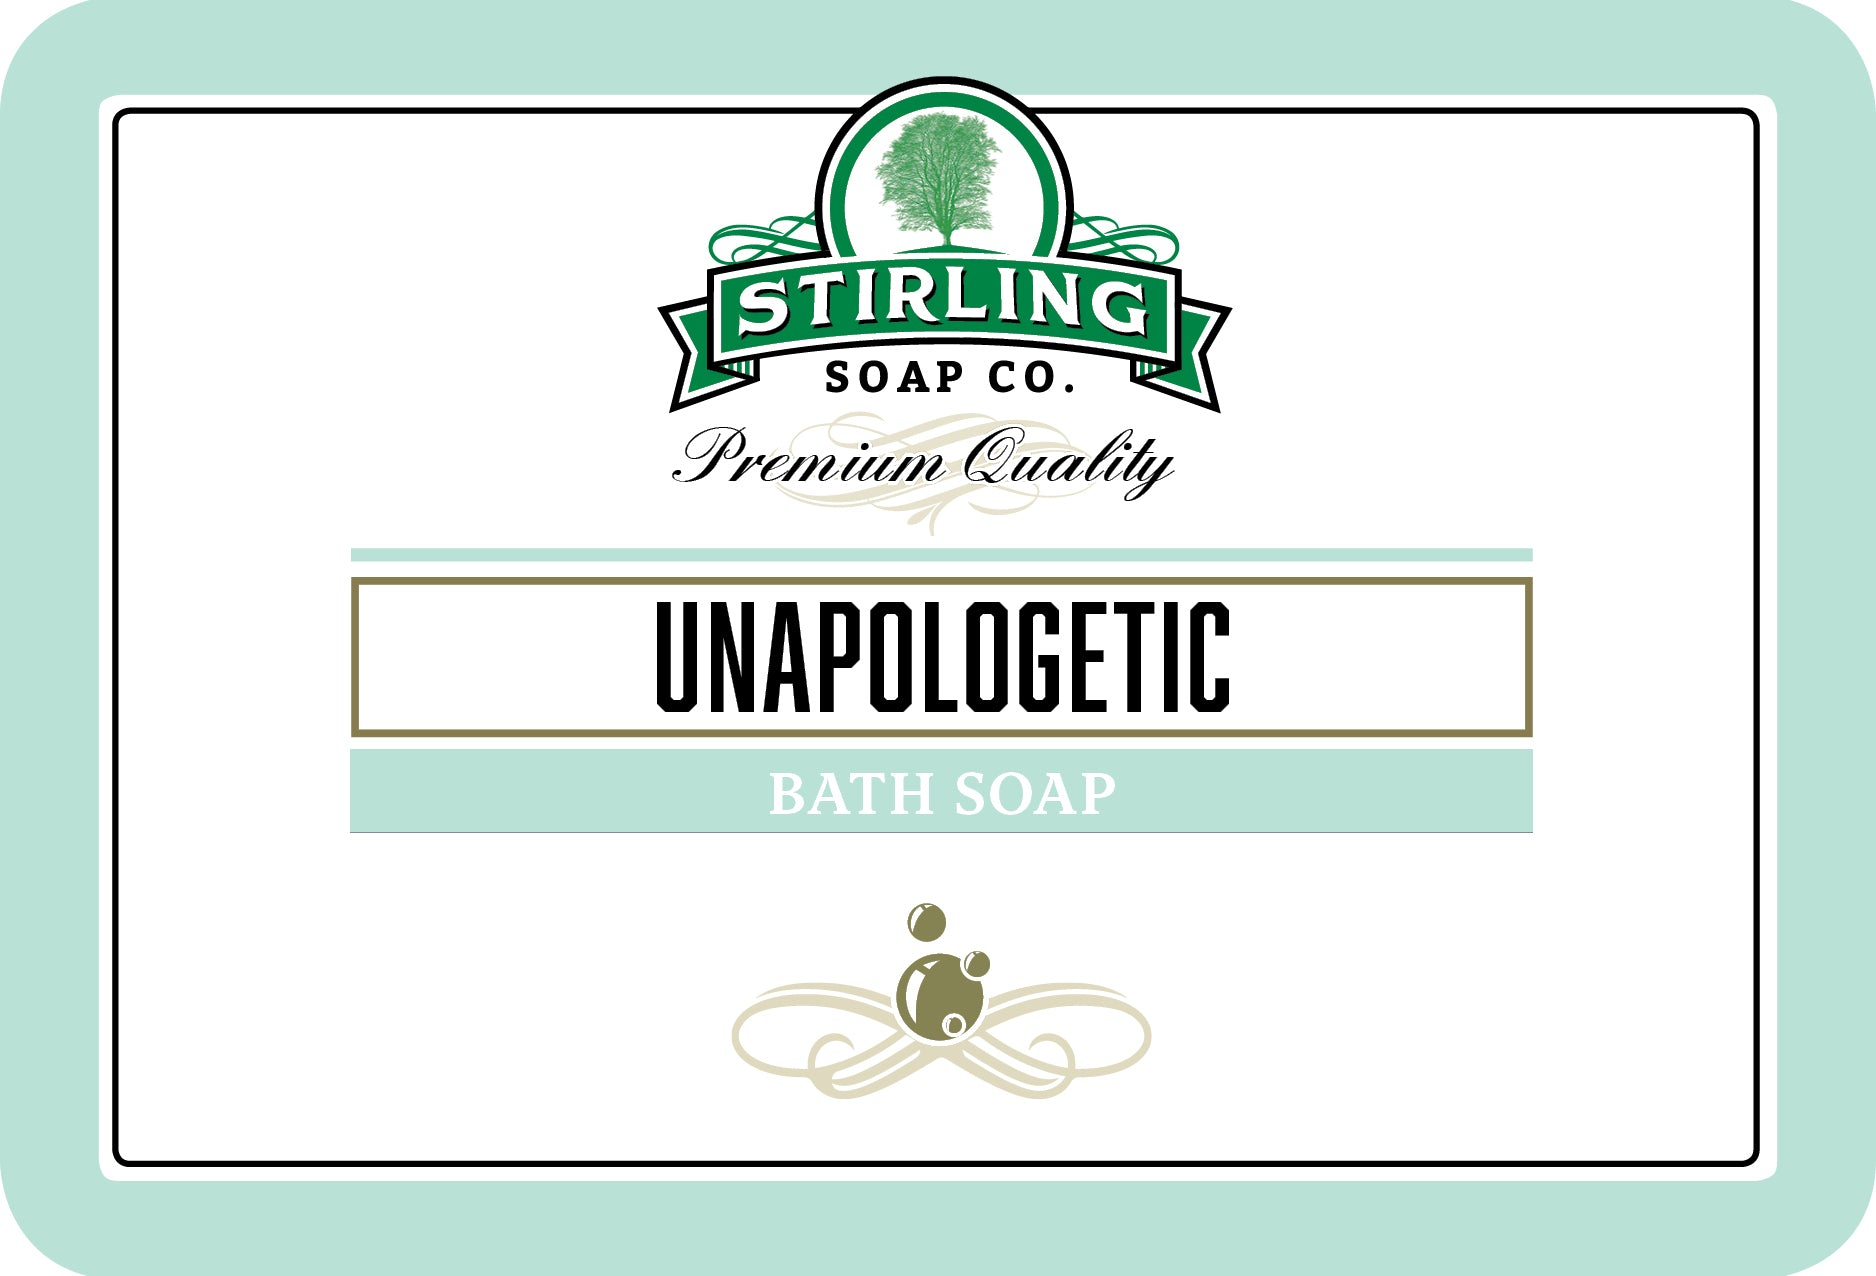 Unapologetic - Bath Soap